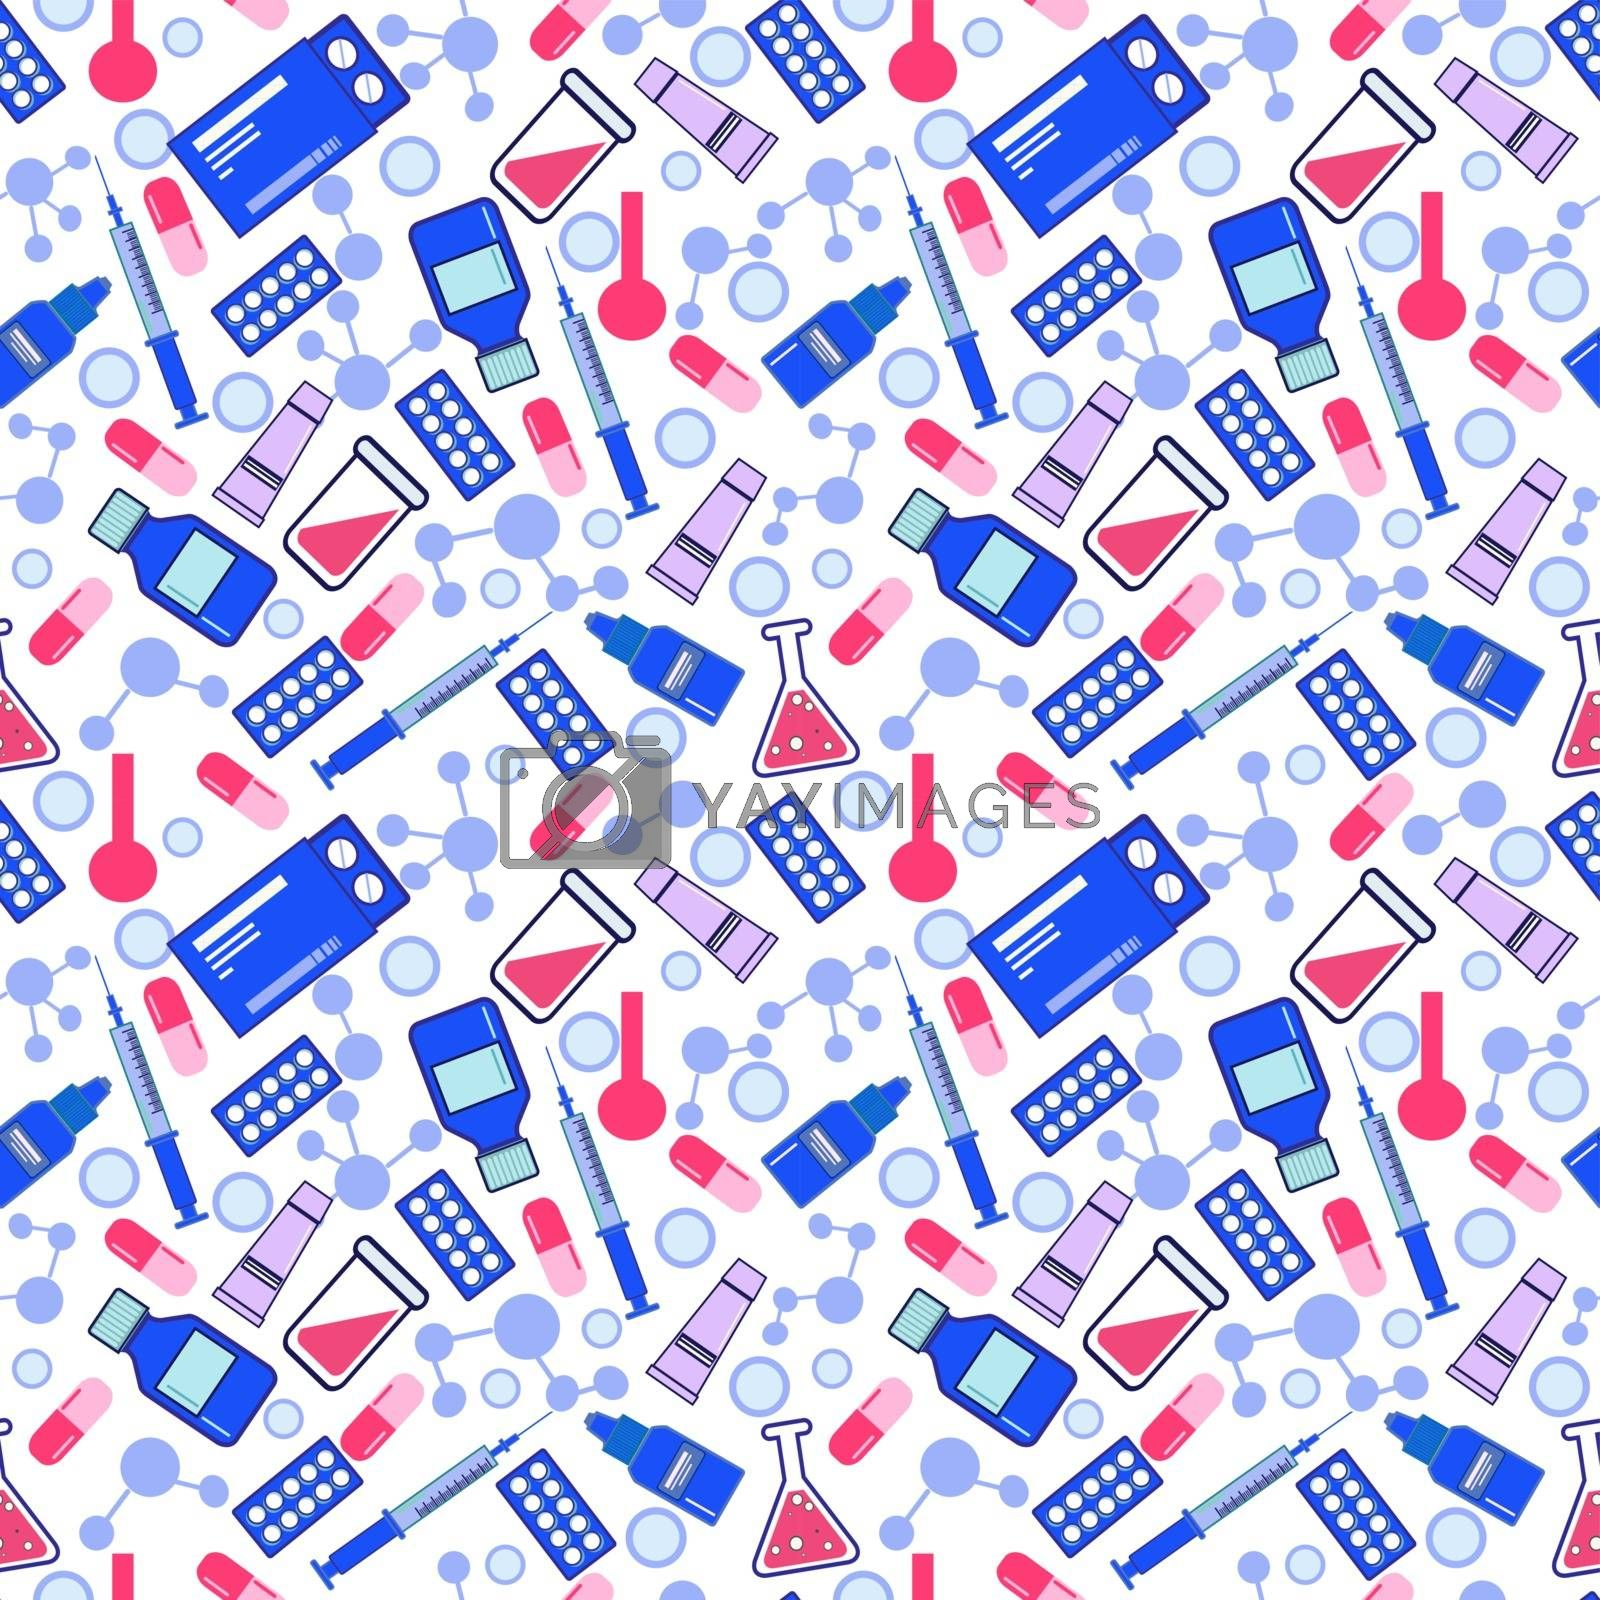 Flat style vector seamless pattern for medical, healthcare or pharmacy concept. Background with medicine and pharmacy items. Wallpaper of chemistry laboratory equipment.